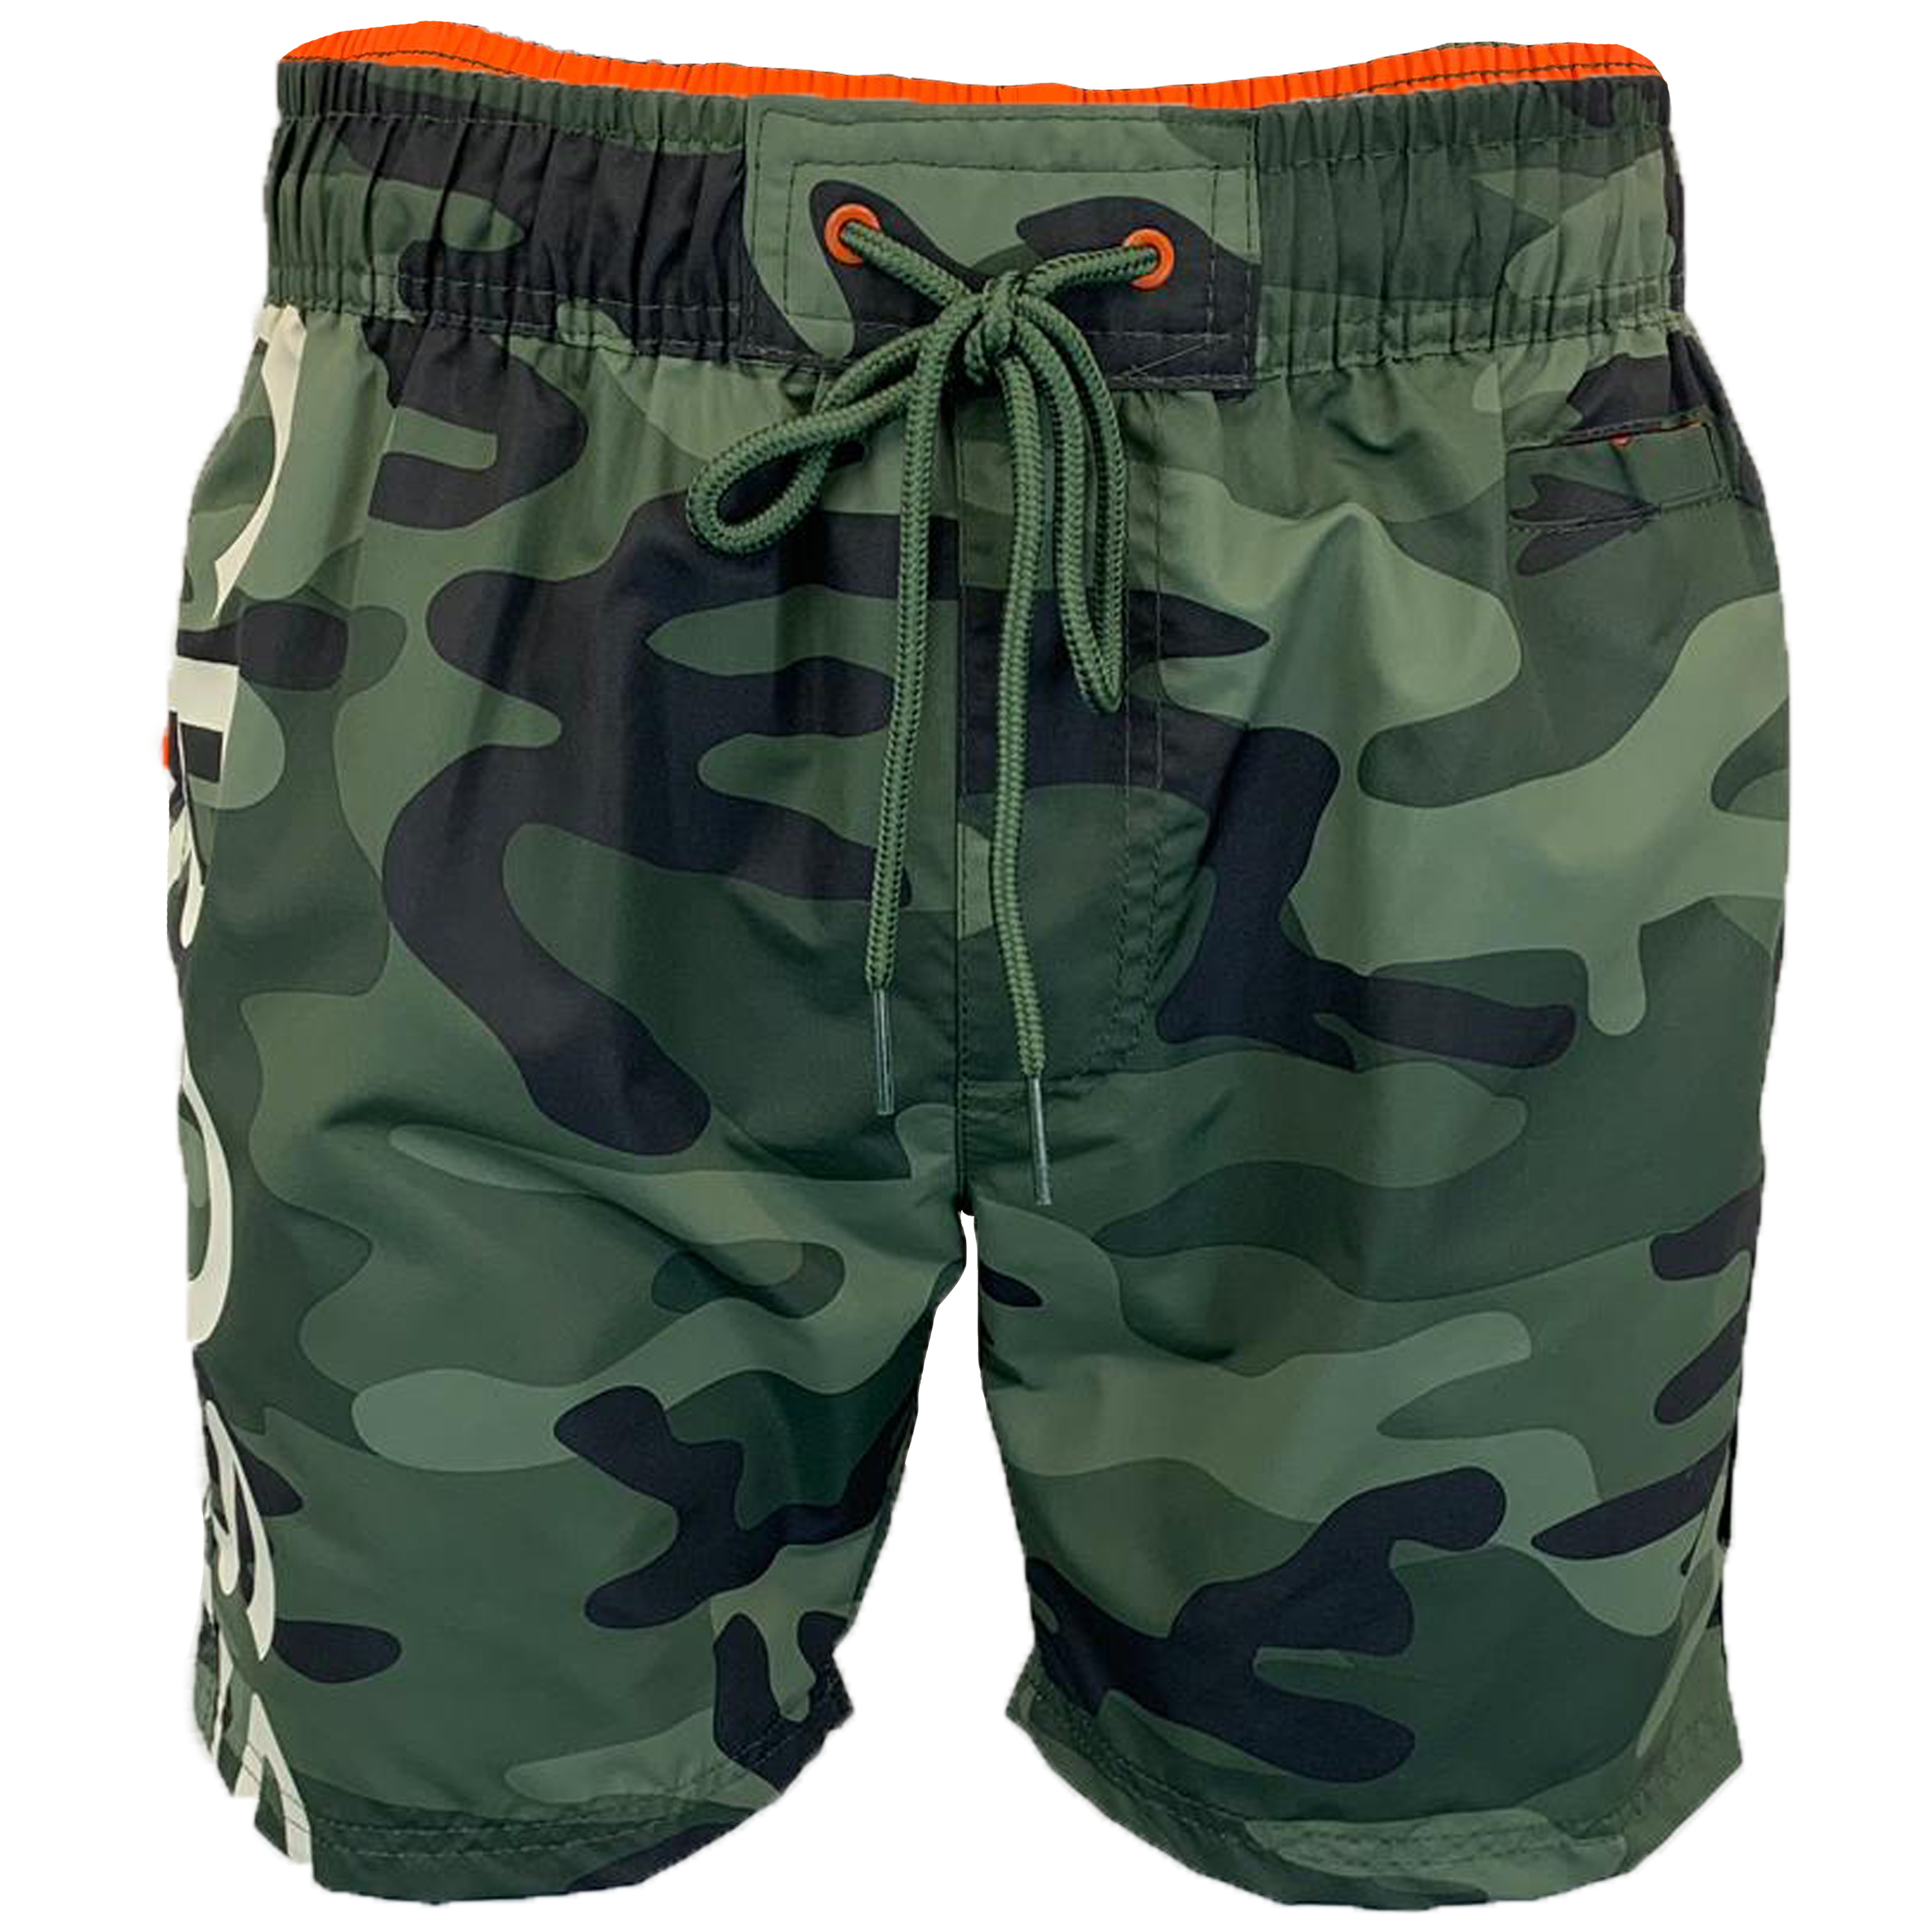 Mens-Camouflage-Swim-Shorts-Crosshatch-Army-Military-Knee-Length-Casual-Summer thumbnail 23